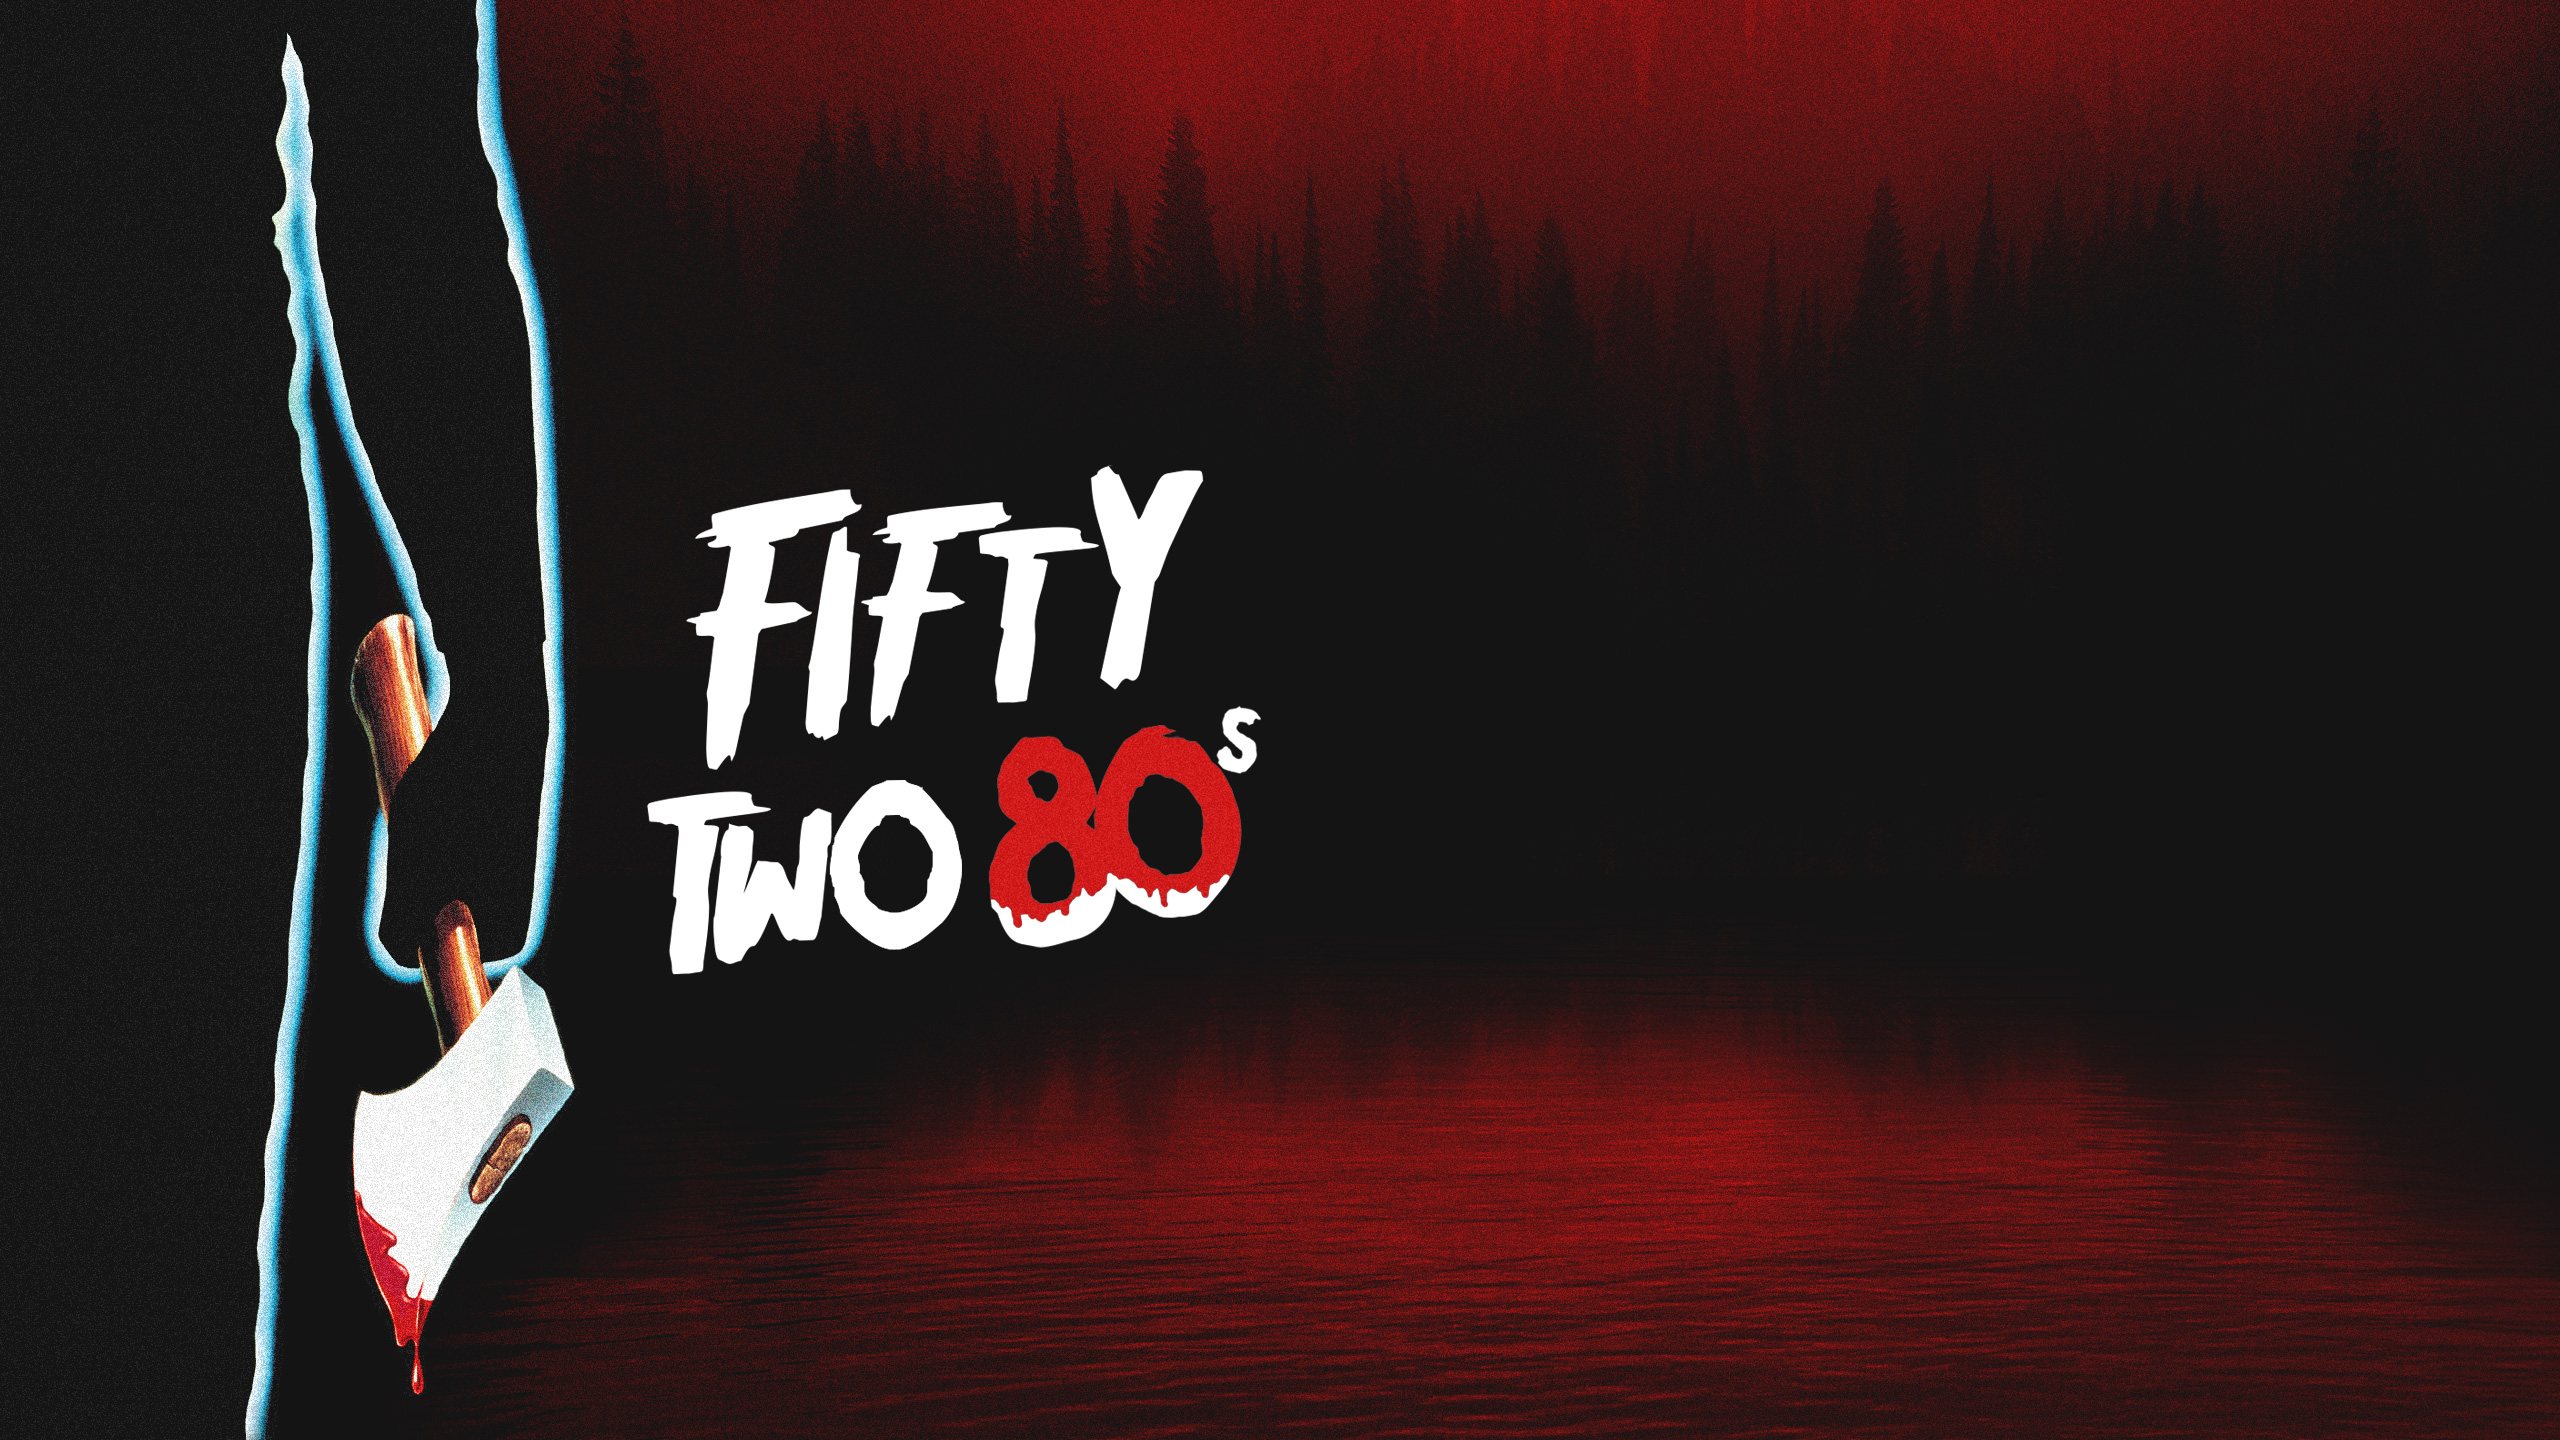 Fifty-Two 80's - A Totally Awesome Shop!